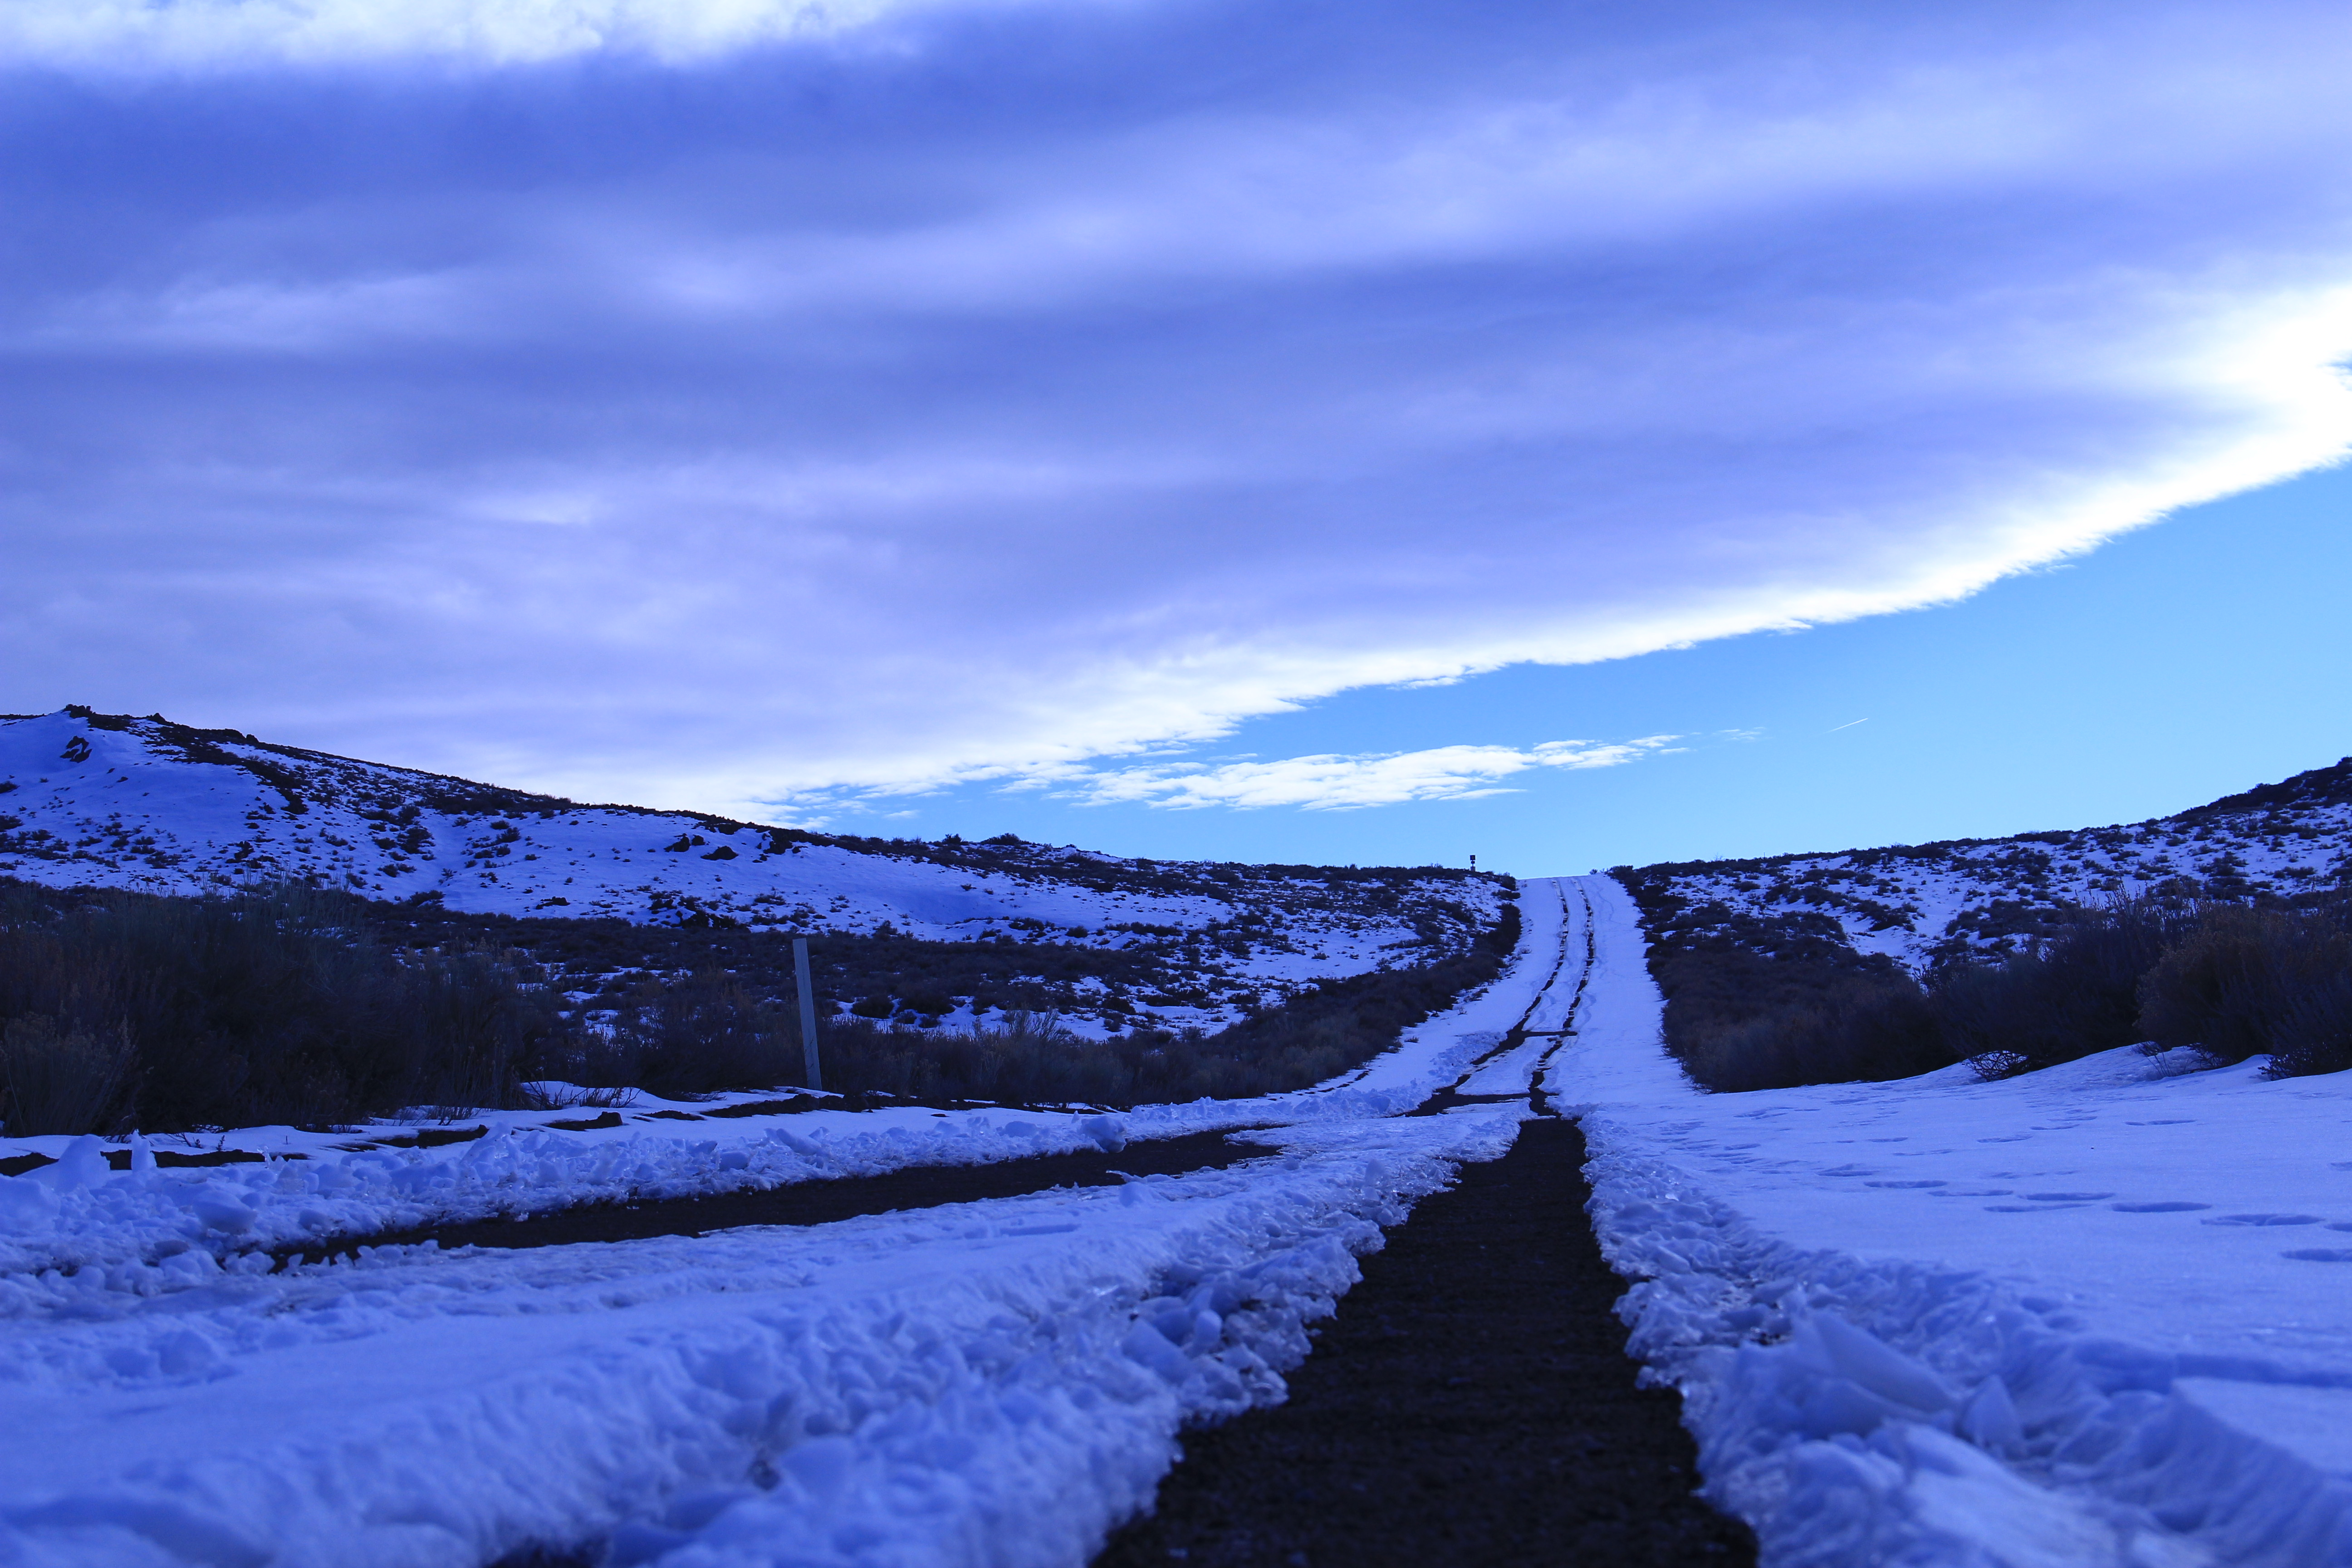 The road to Bodie.